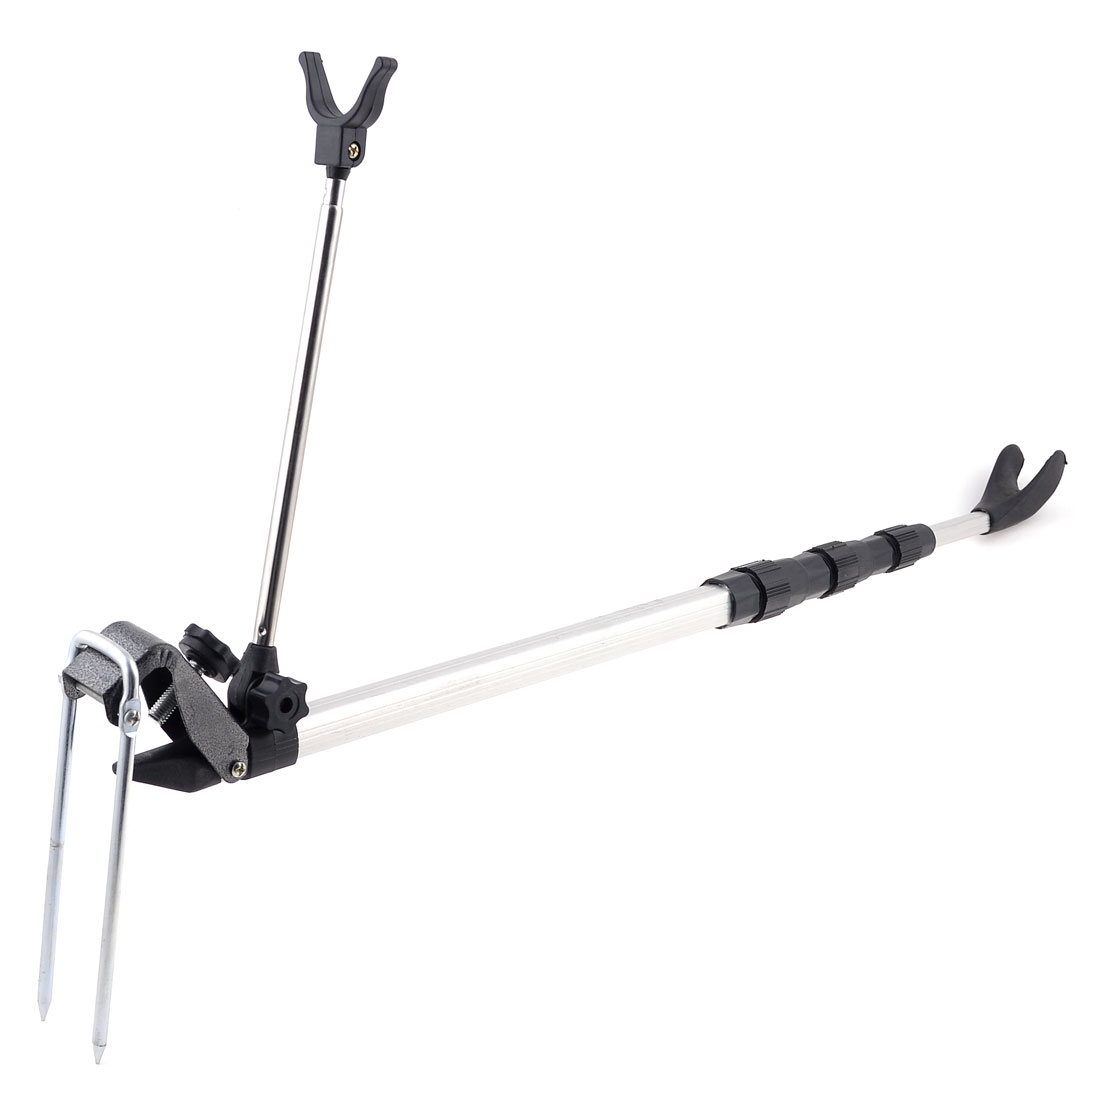 Telescoping 4 Sections Holder Stand Bracket 1.5M 4.9 Ft for Fishing Rod